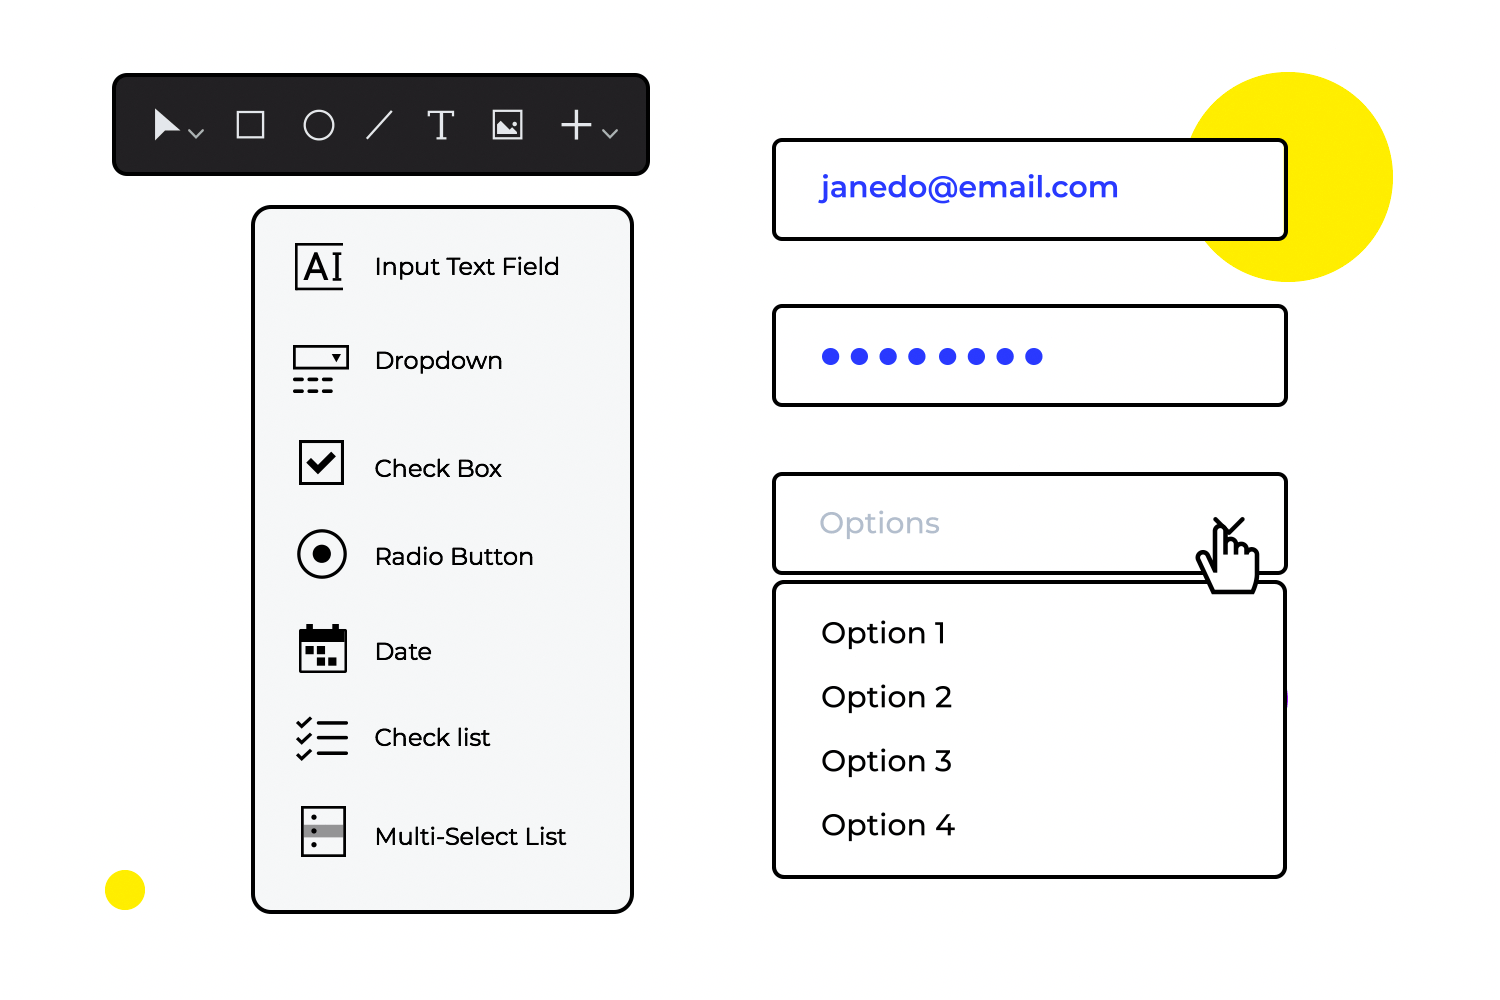 wireframing tool to design website apps